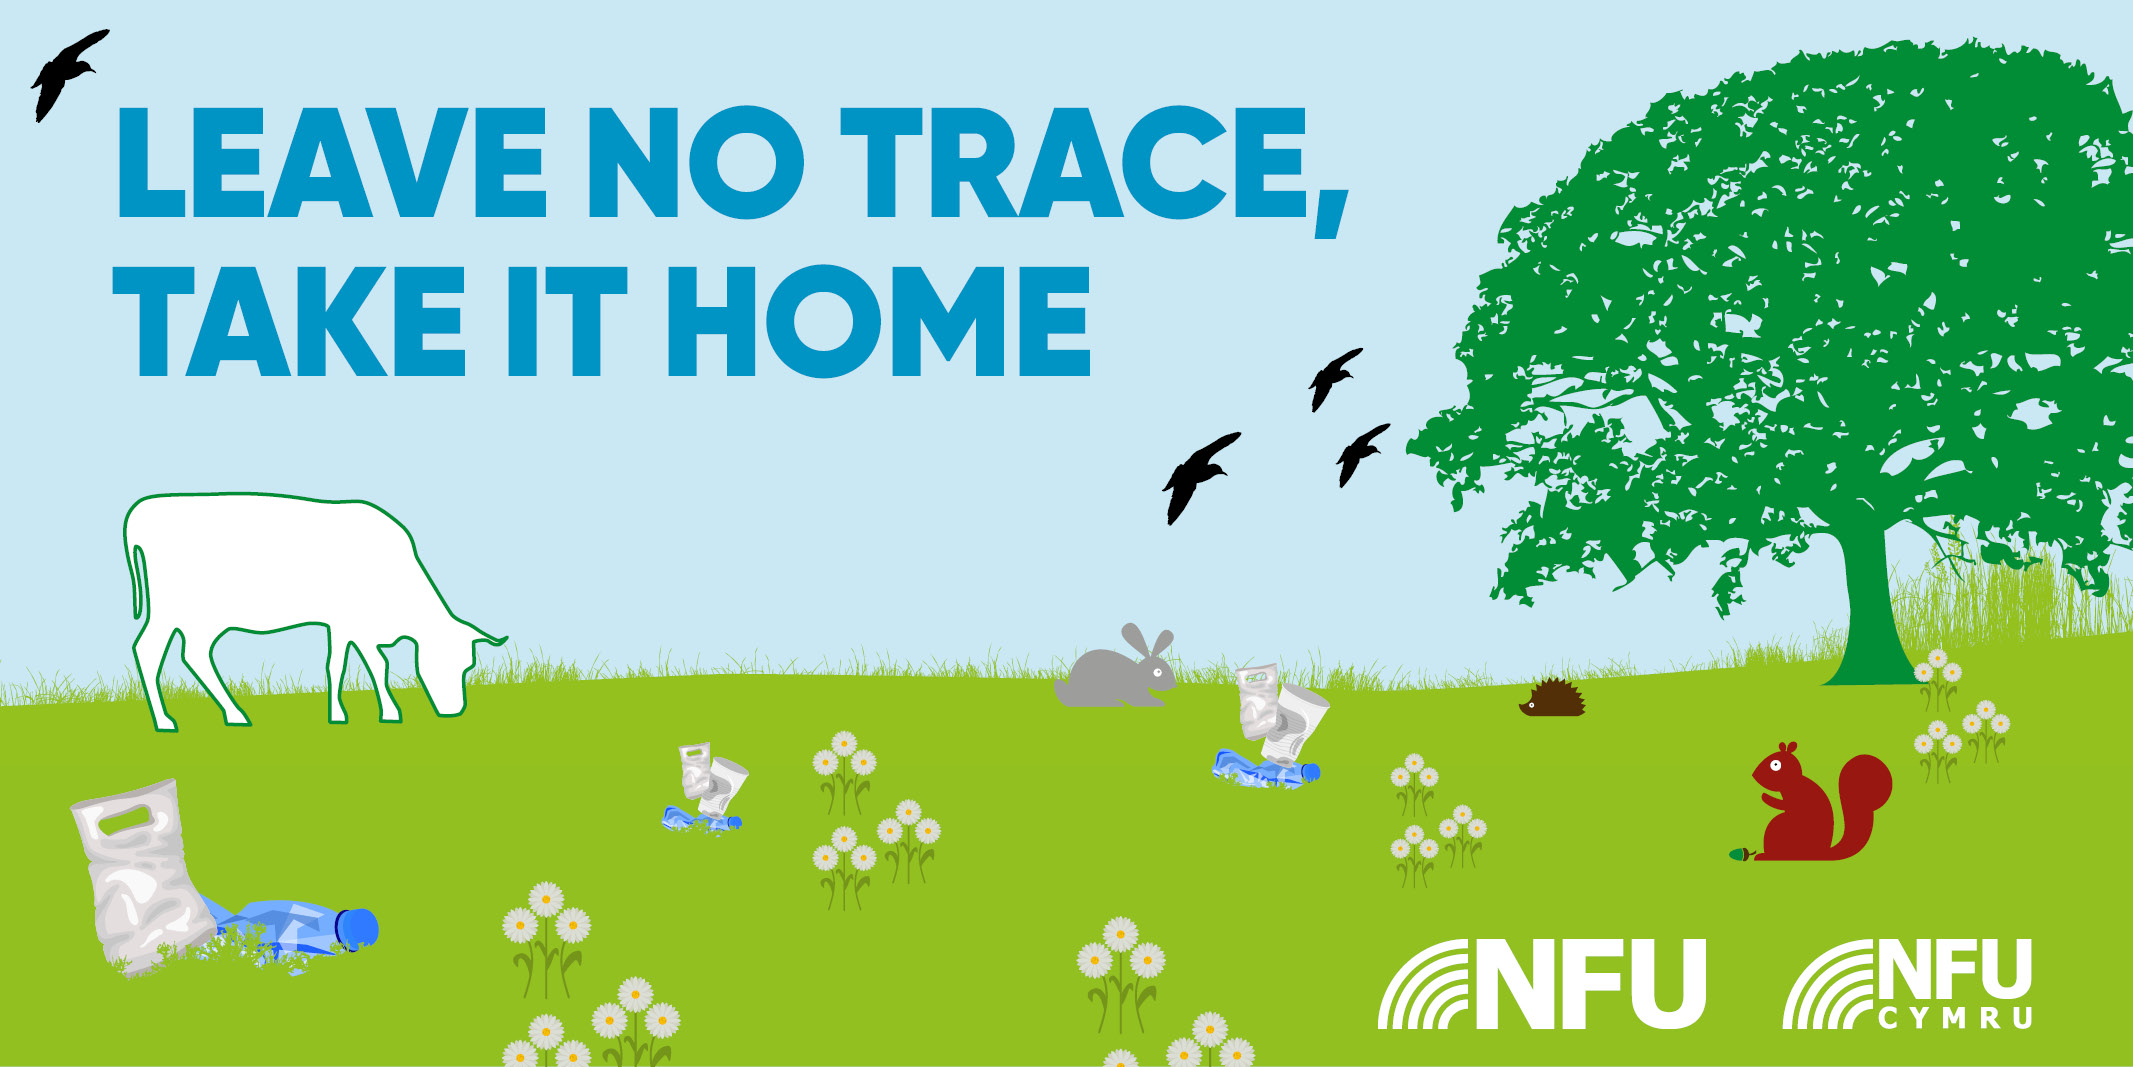 Leave no trace take your litter home